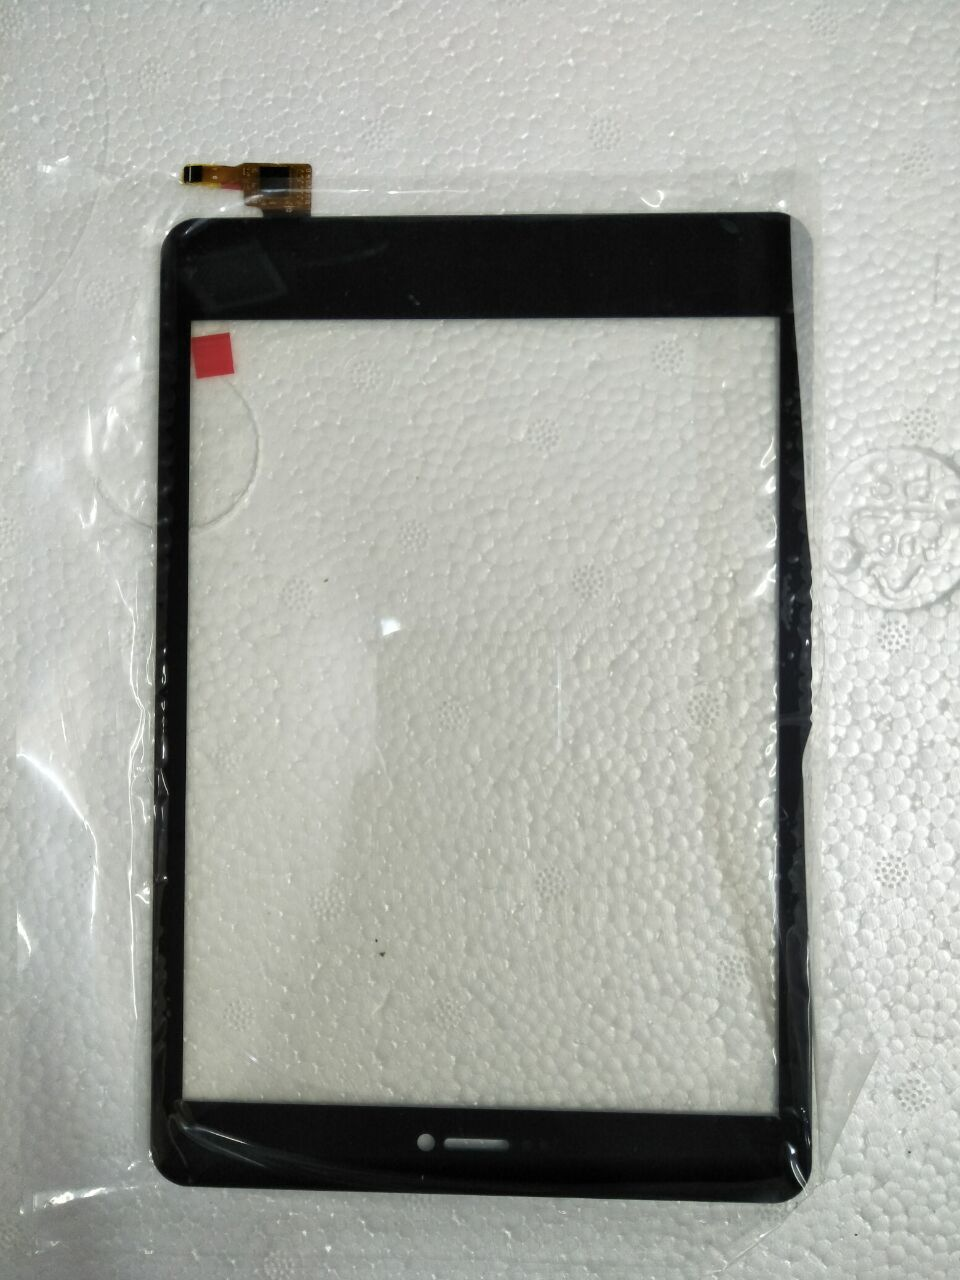 New For 7.85 inch Tablet 078135-01a-v1 Touch Screen Touch Panel digitizer Glass Sensor Replacement Free Shipping black new for capacitive touch screen digitizer panel glass sensor 101056 07a v1 replacement 10 1 inch tablet free shipping